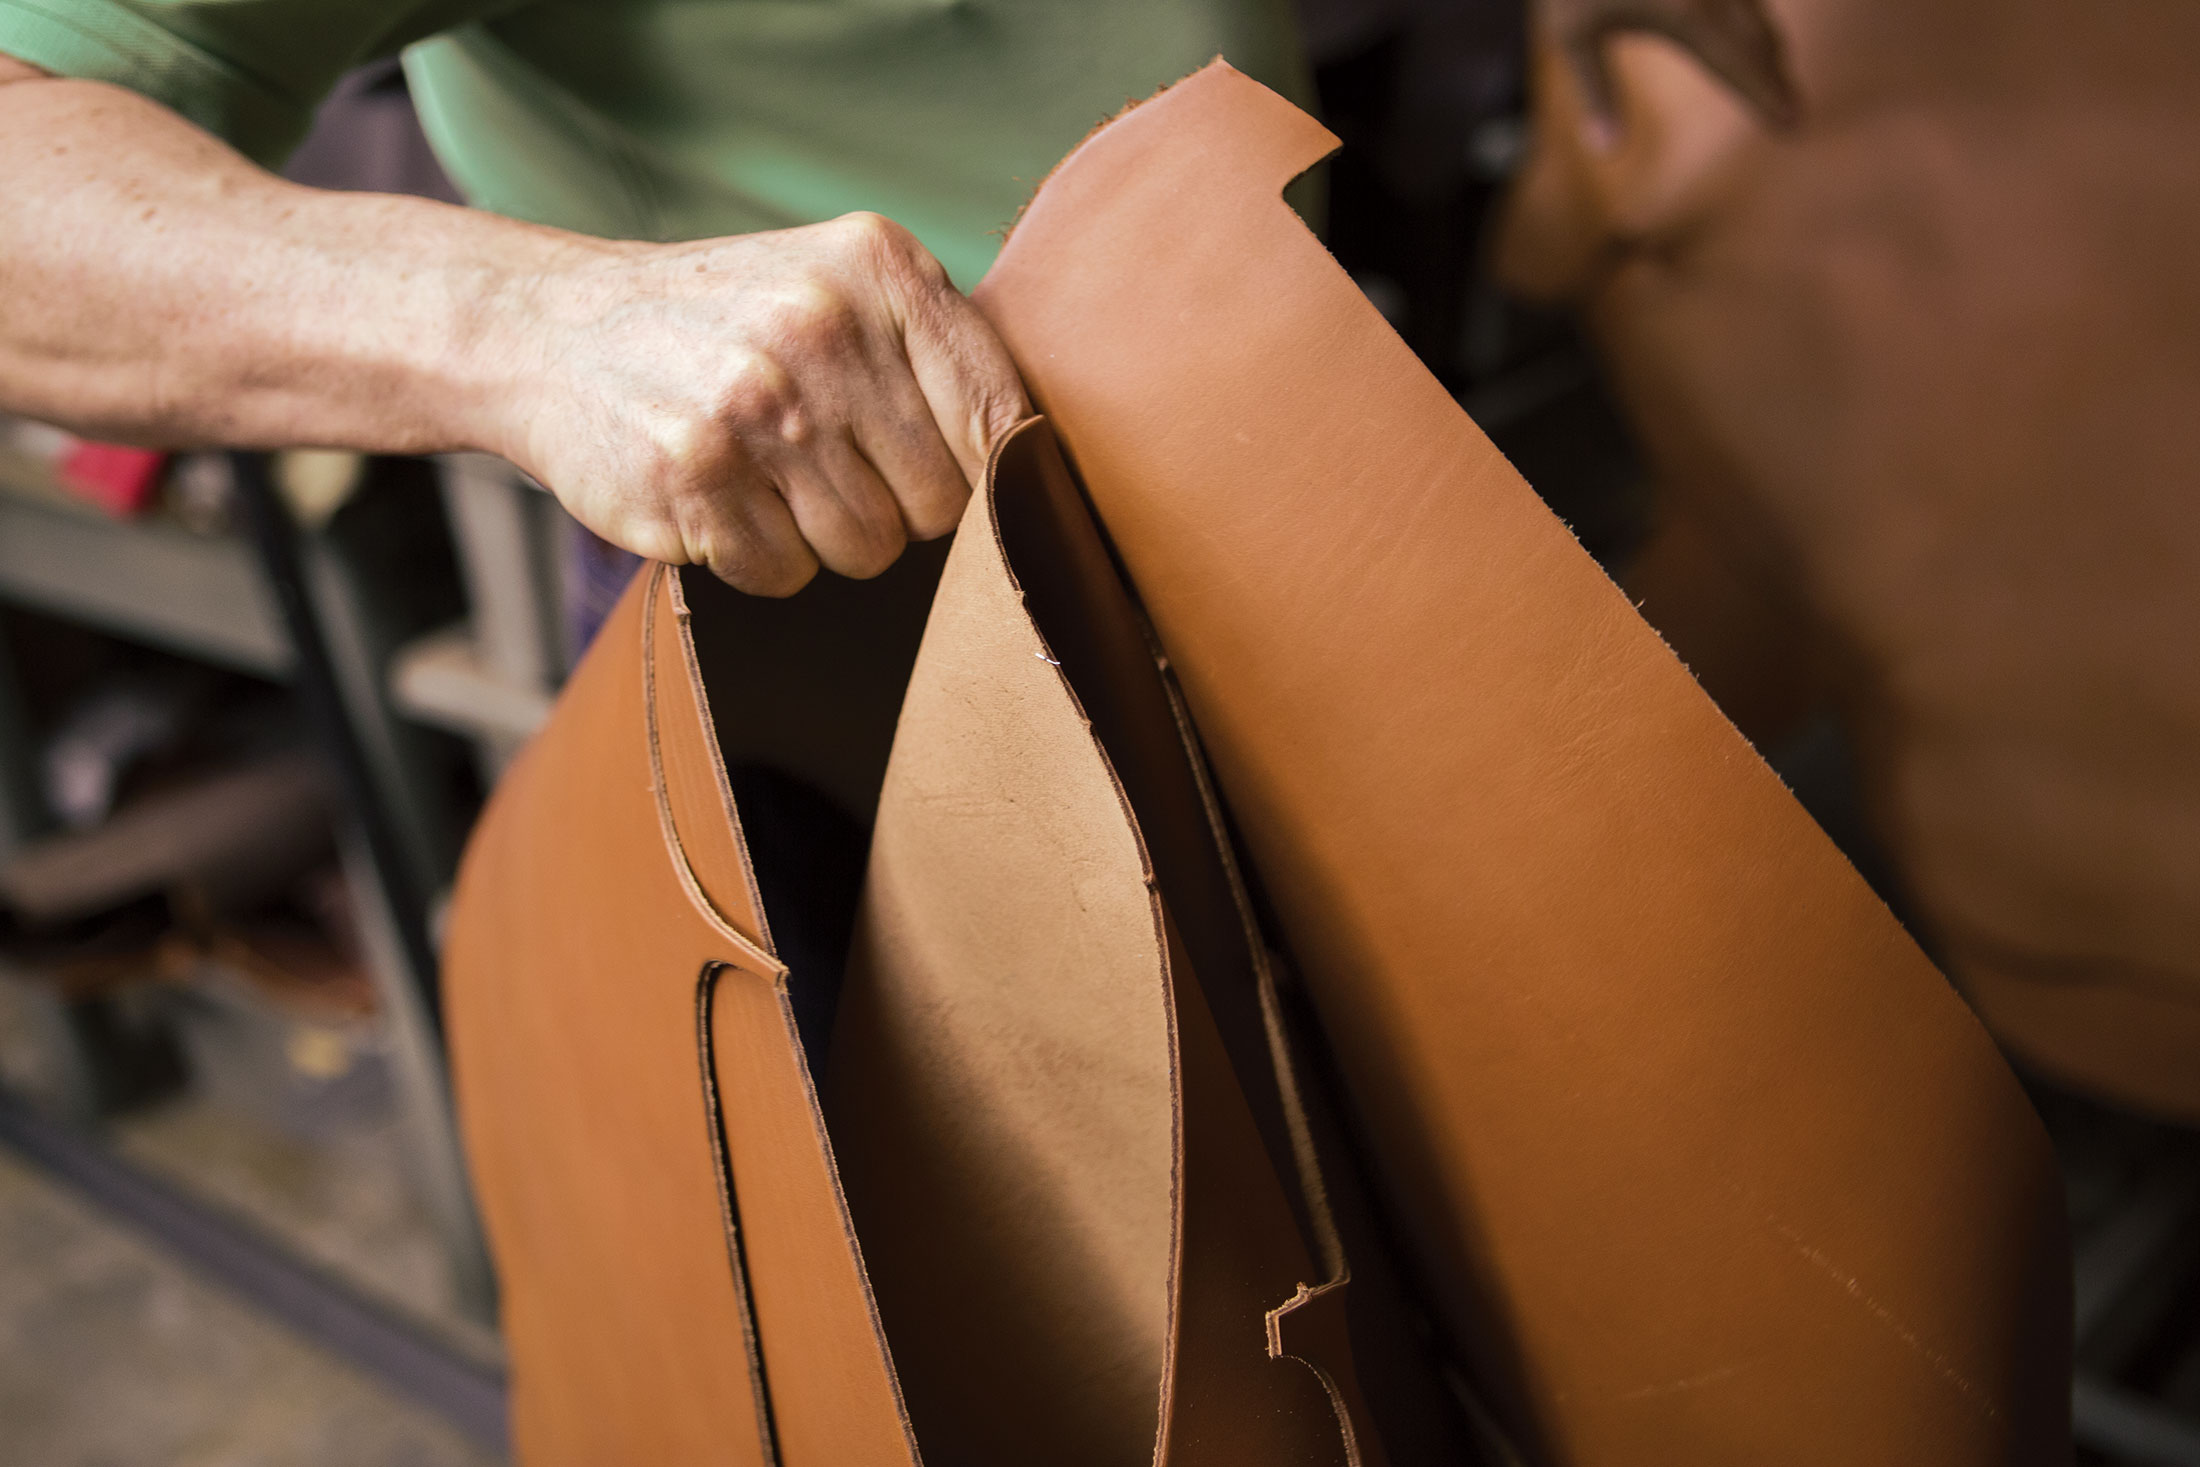 A craftsperson handling cut leather pieces.